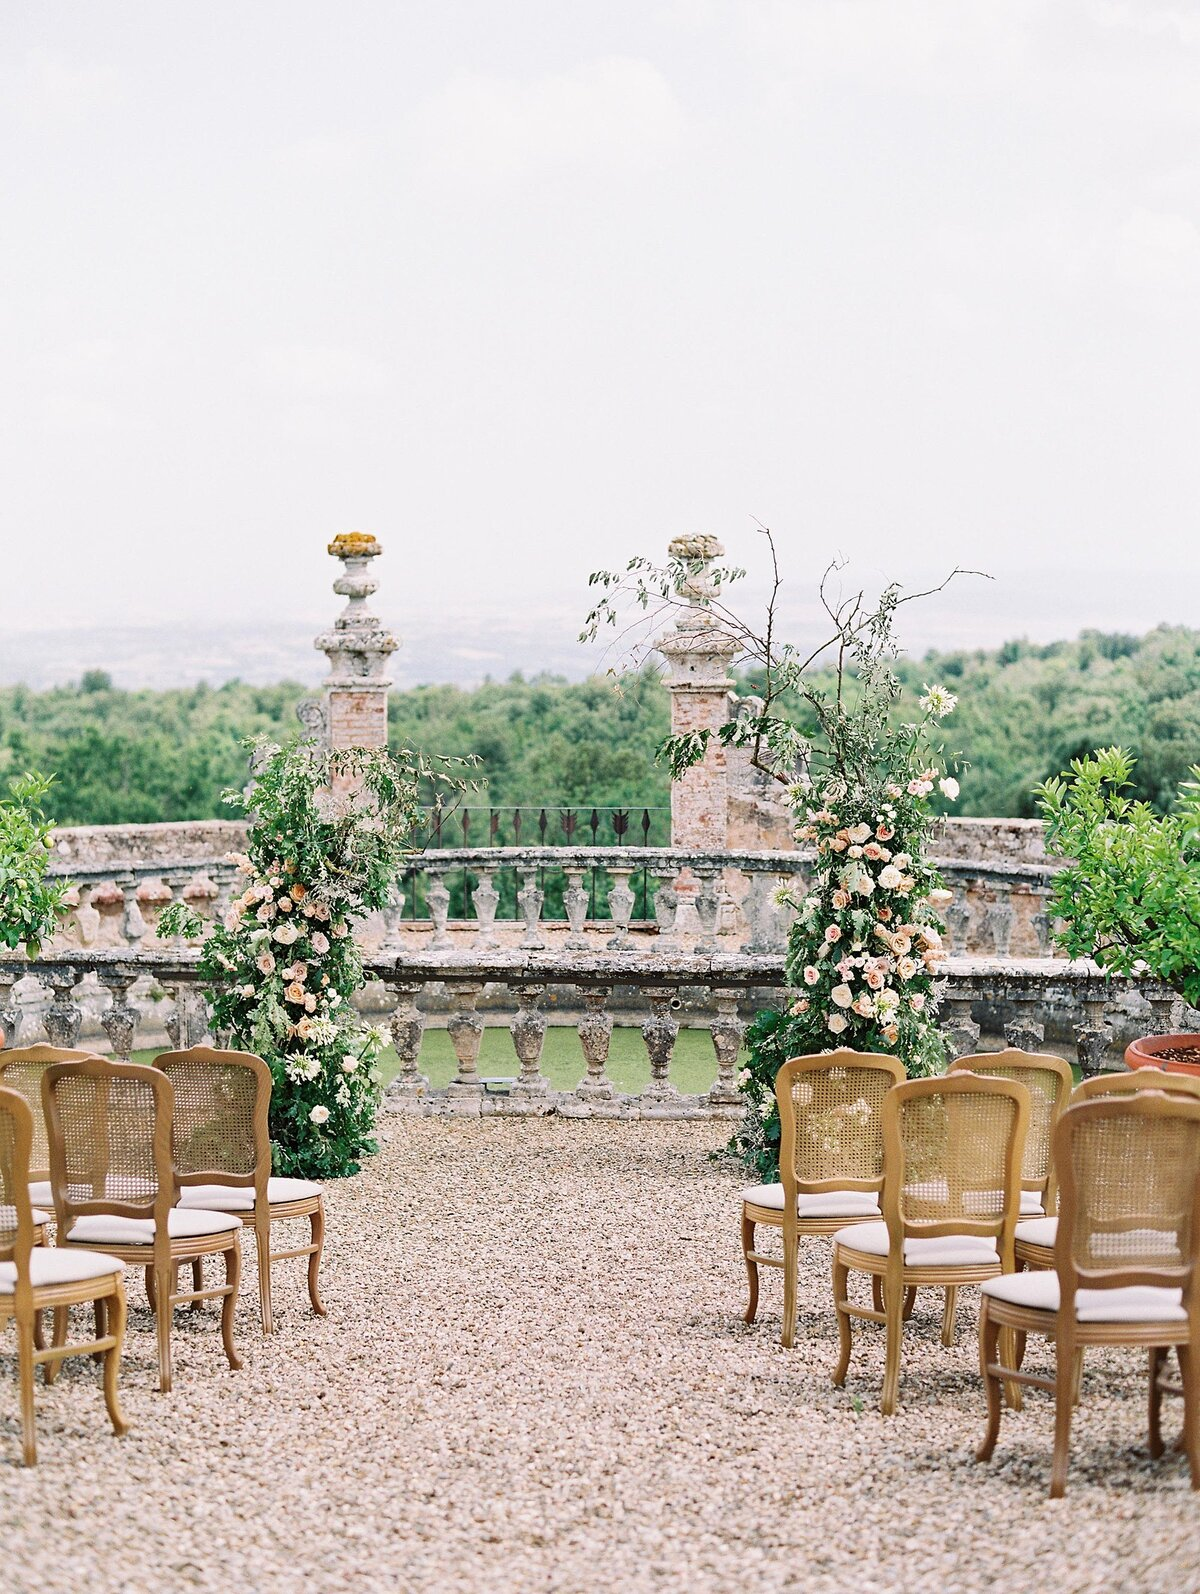 NKT-Events_Wedding-Inspiration-Editorial_Castello-di-Celsa_0260